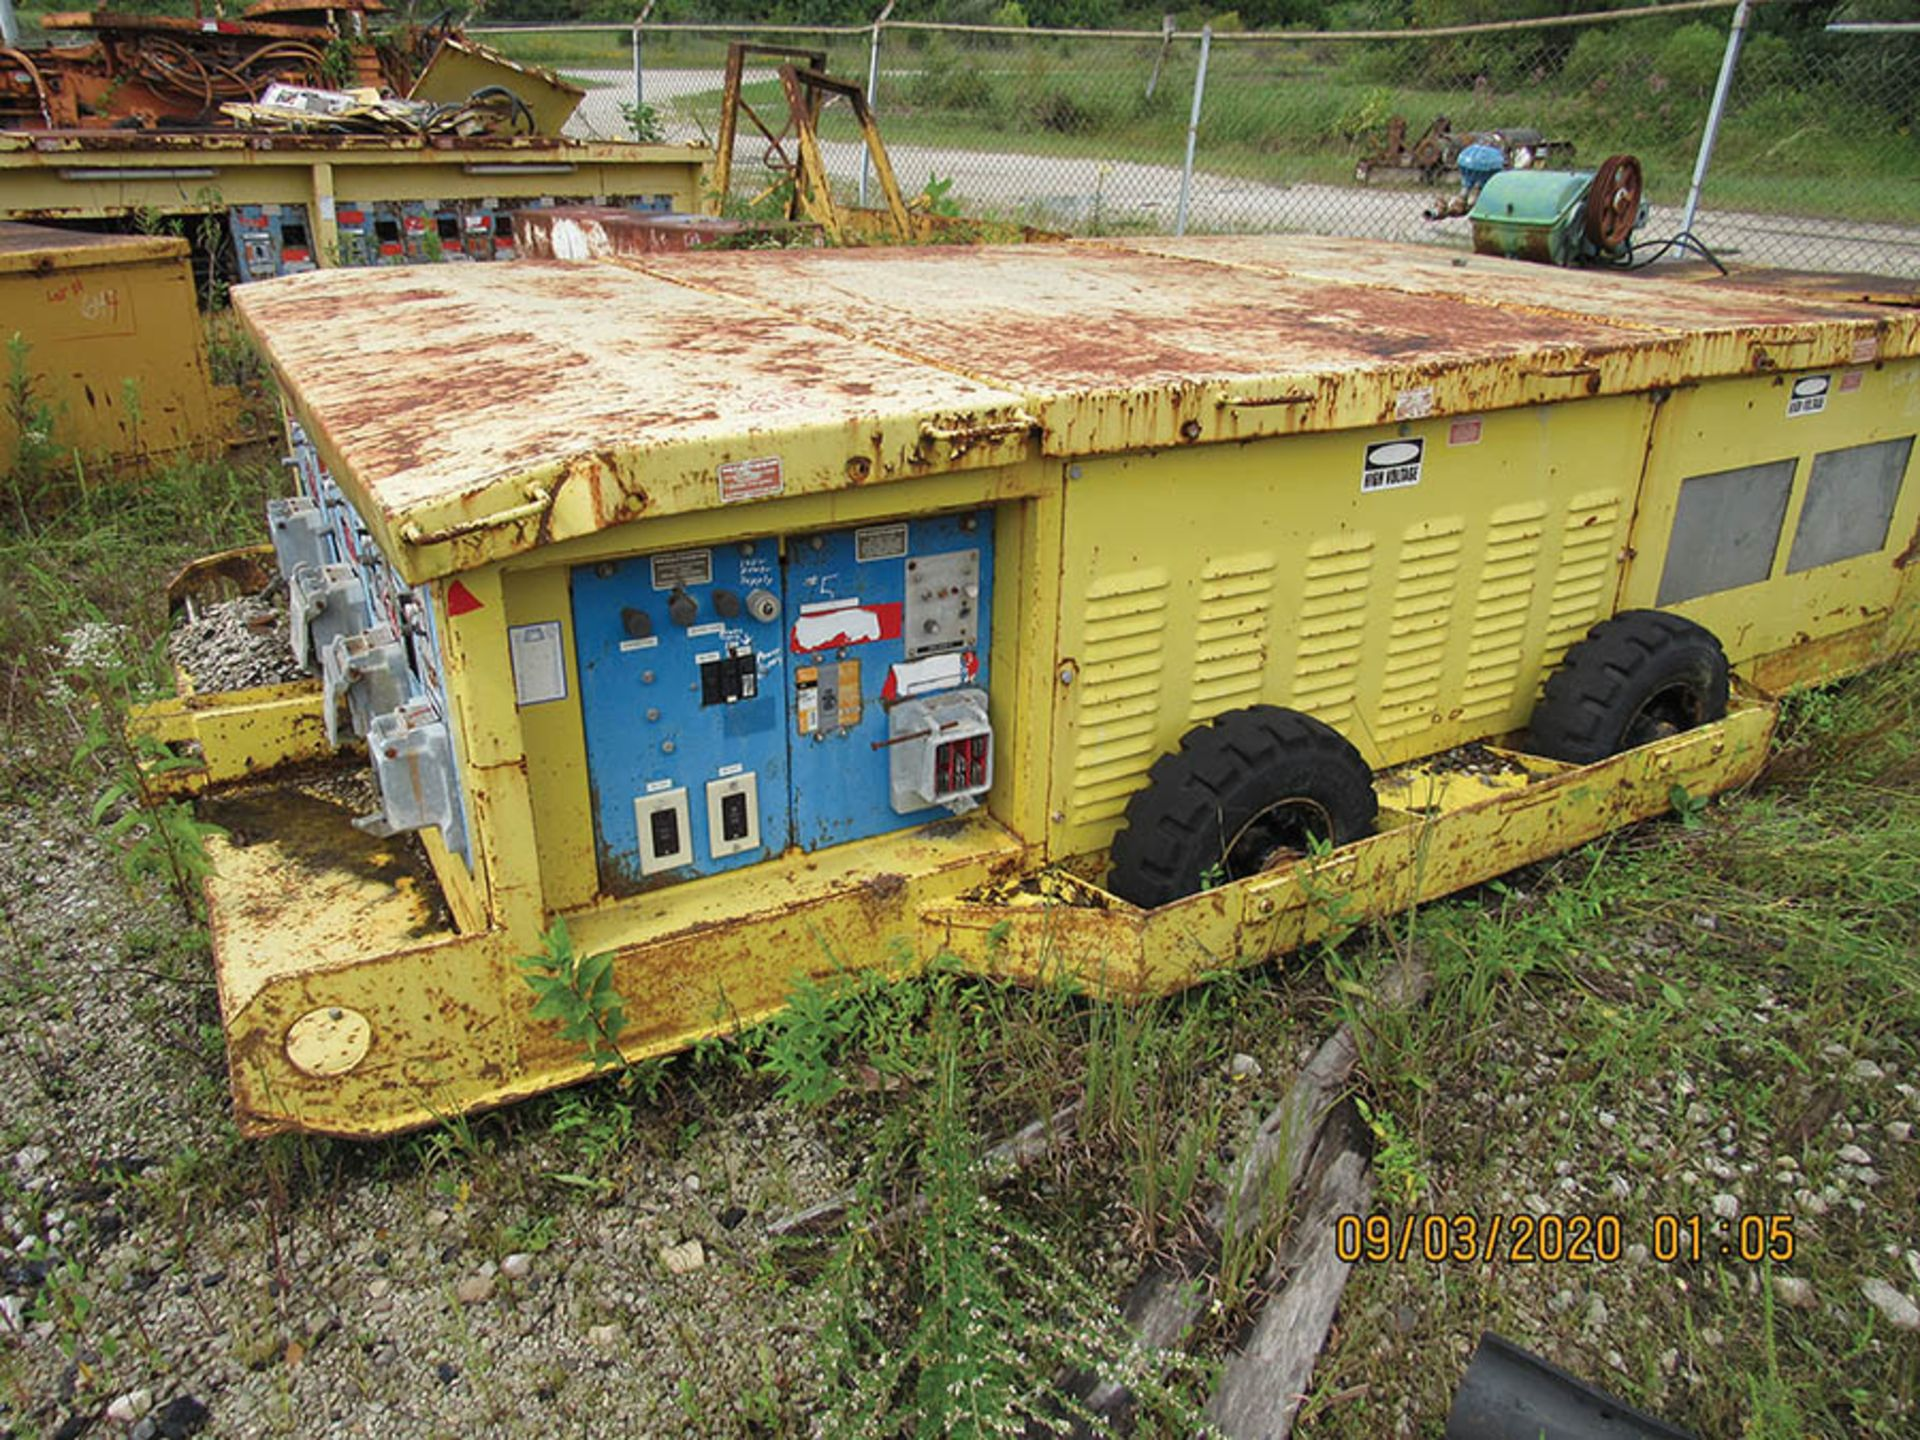 Lot 617 - POWER CENTER, INFORMATION N/A